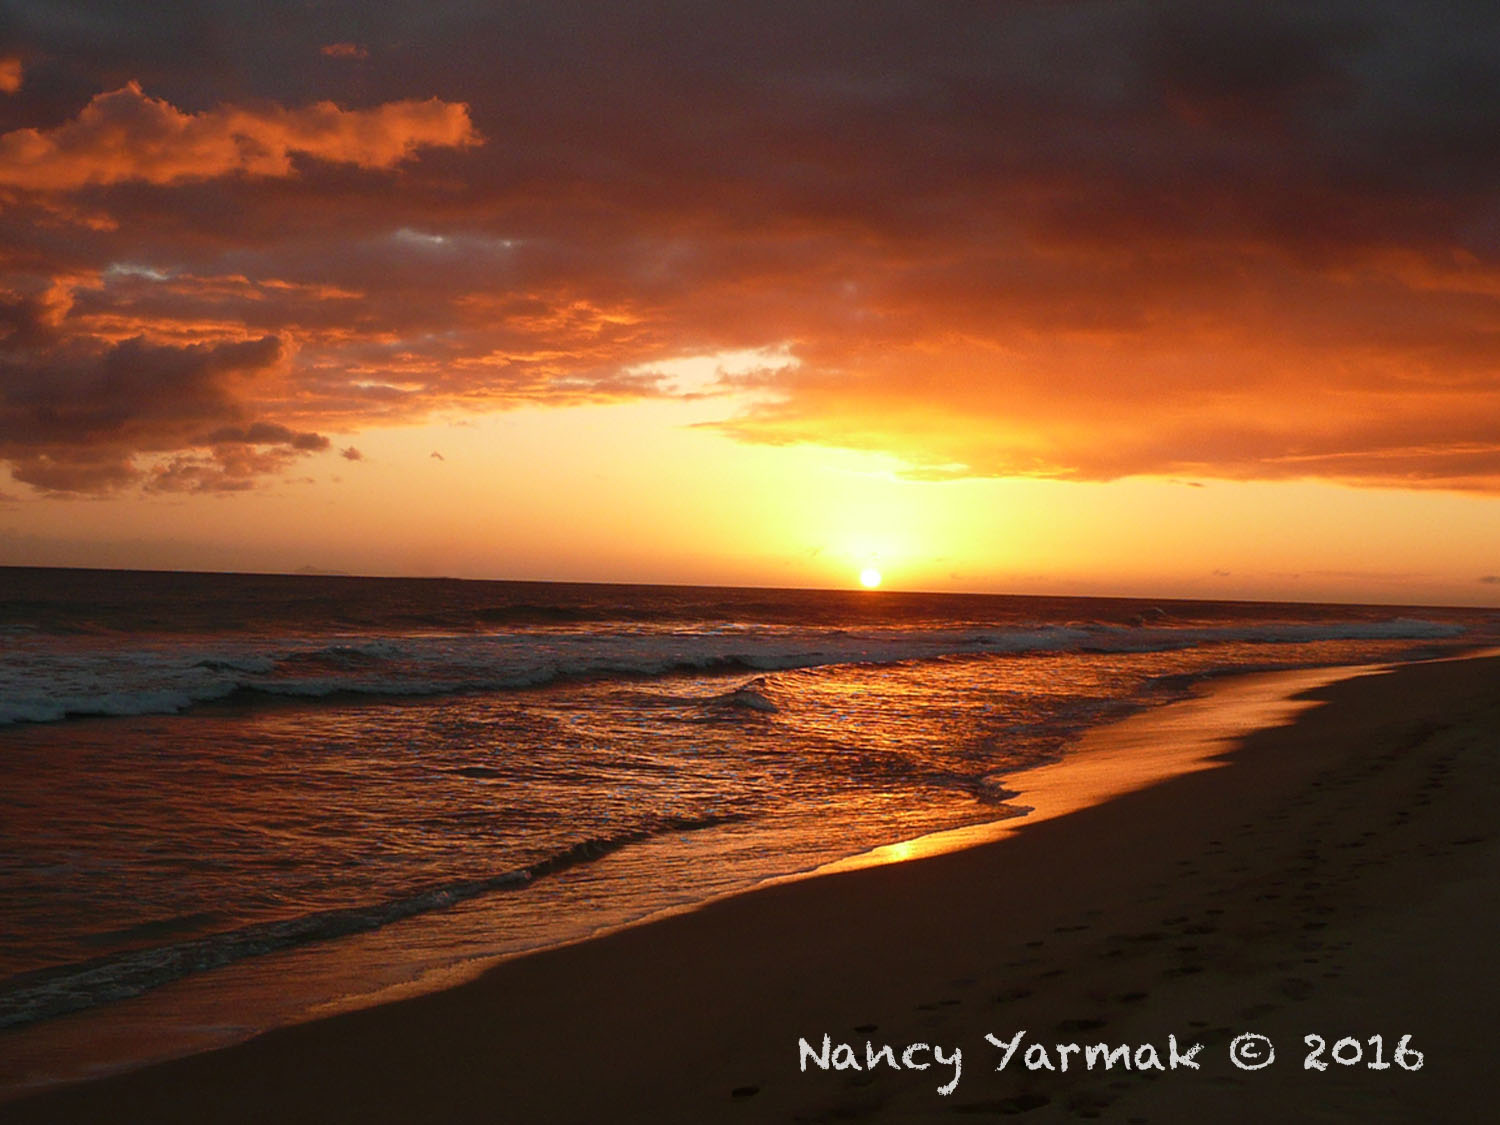 Hawaiian Sunset-Nancy Yarmak